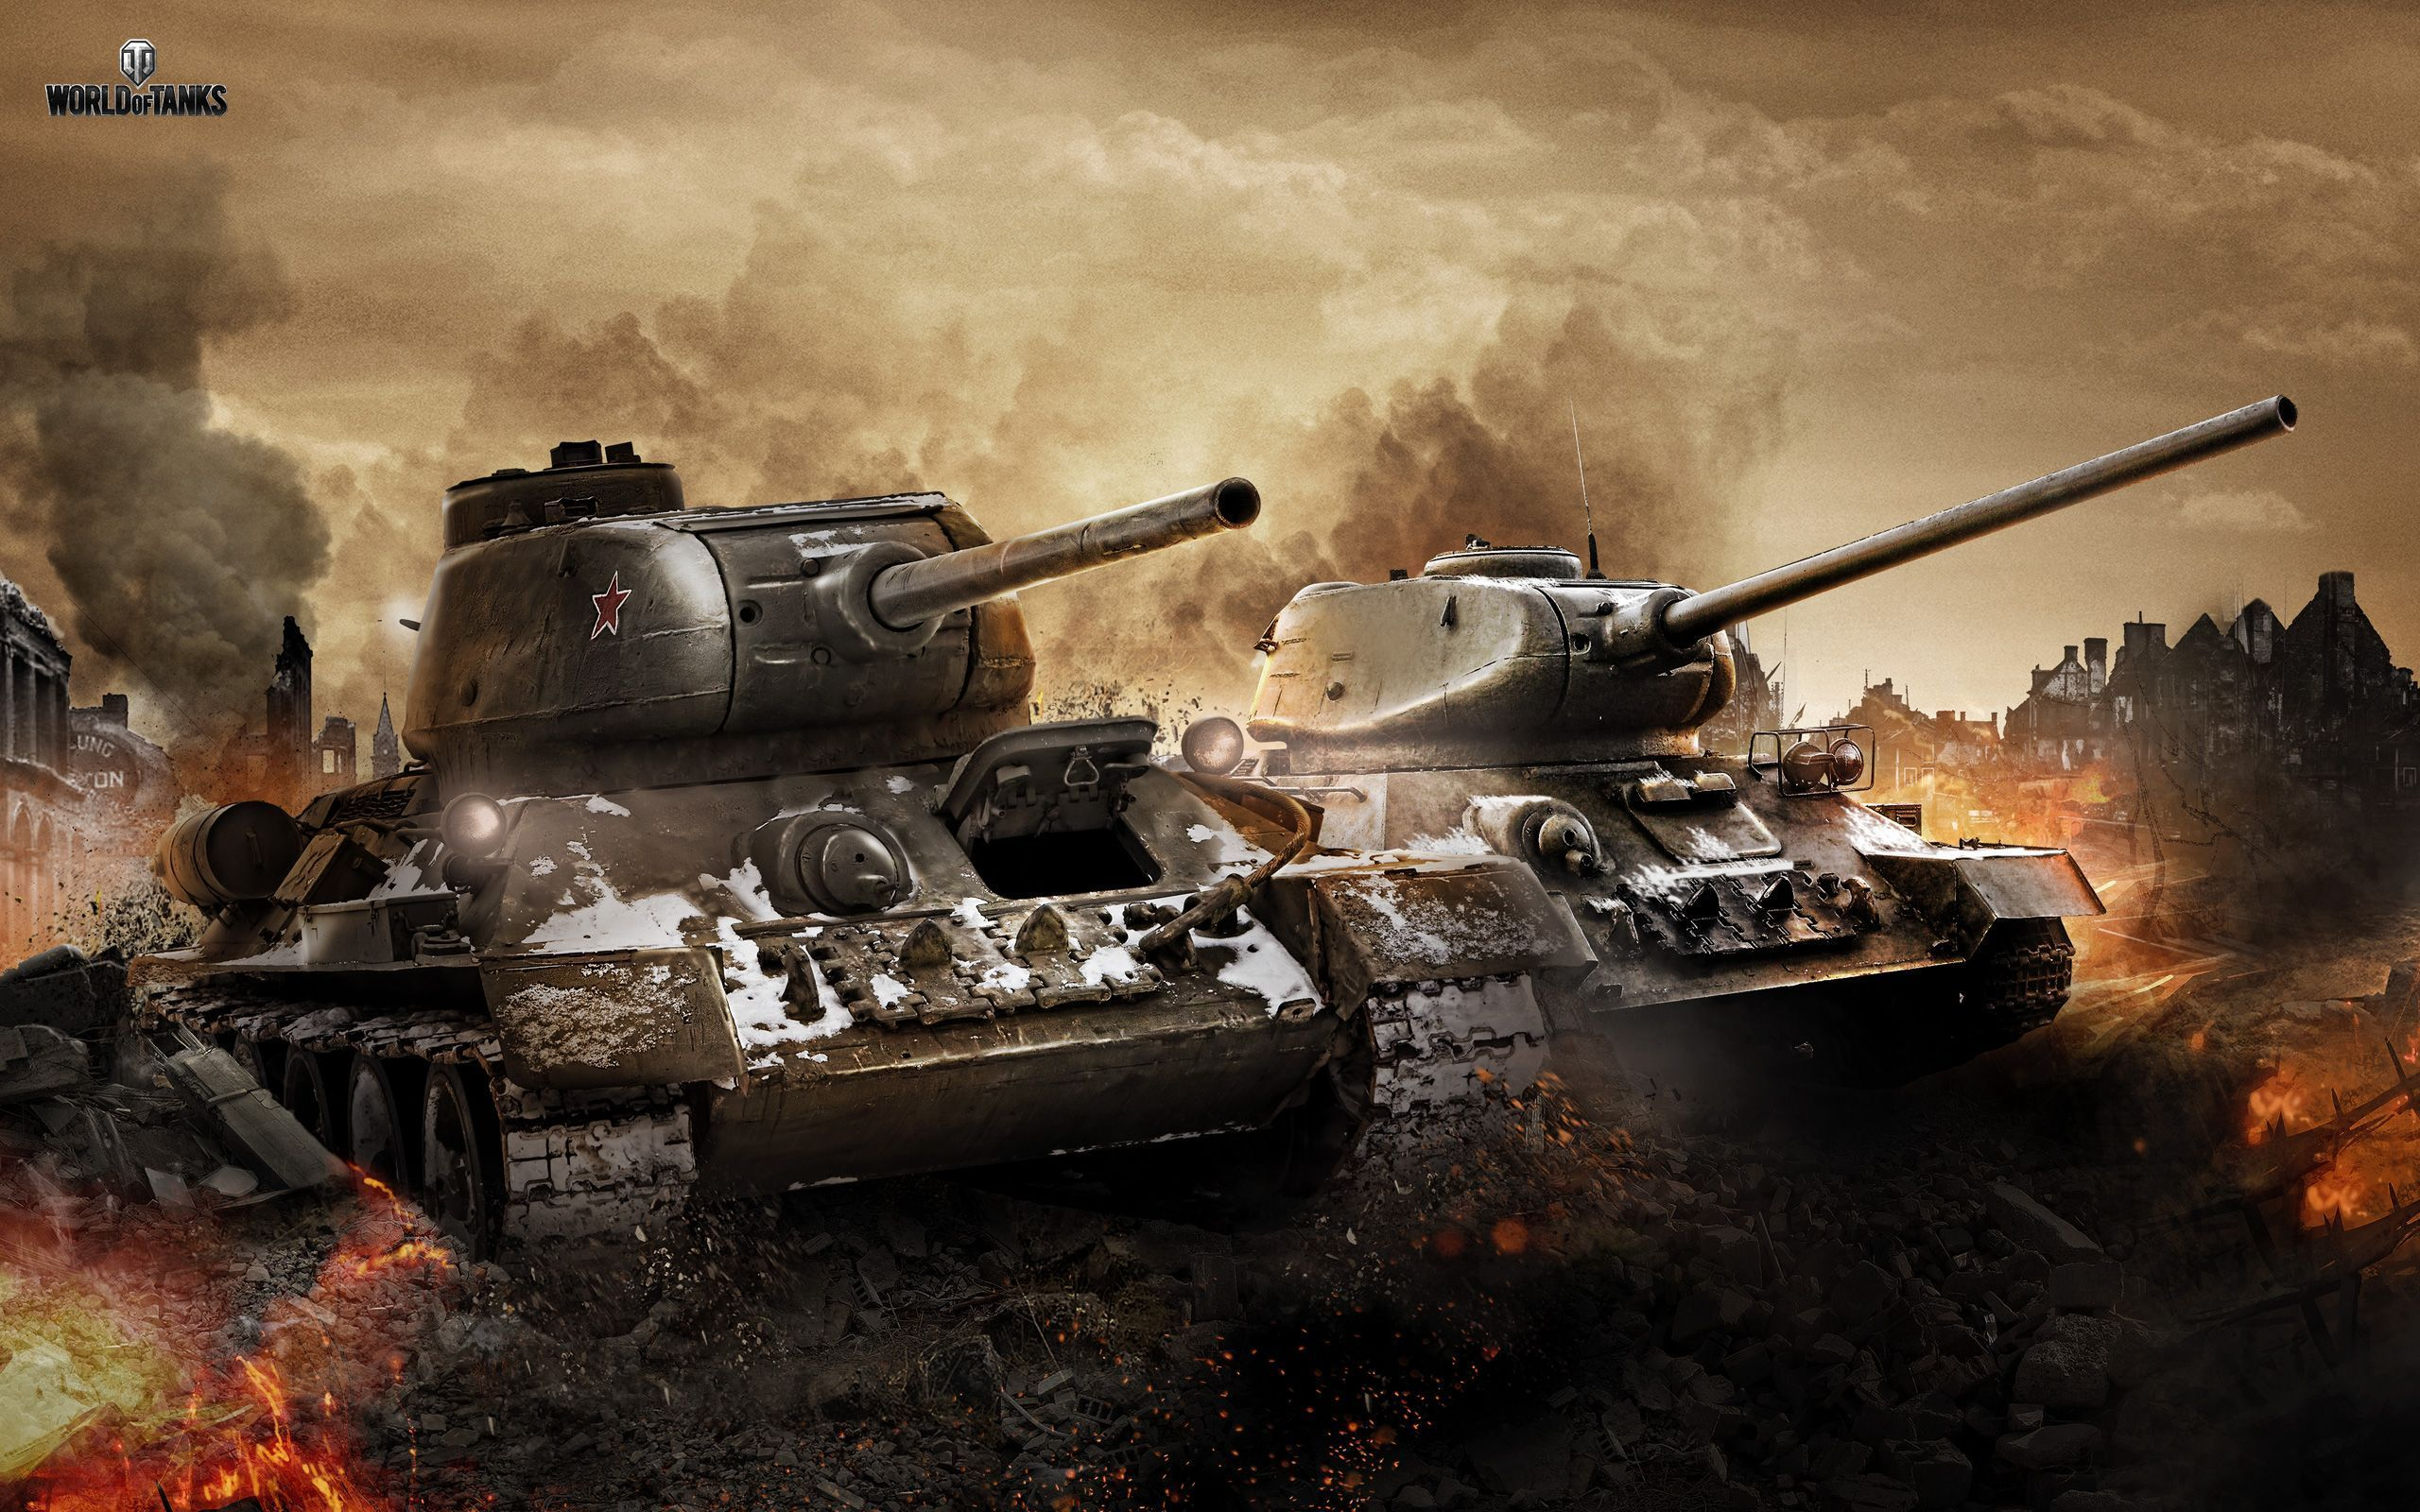 World Of Tanks Wallpapers 1920x1080 Group (94+)